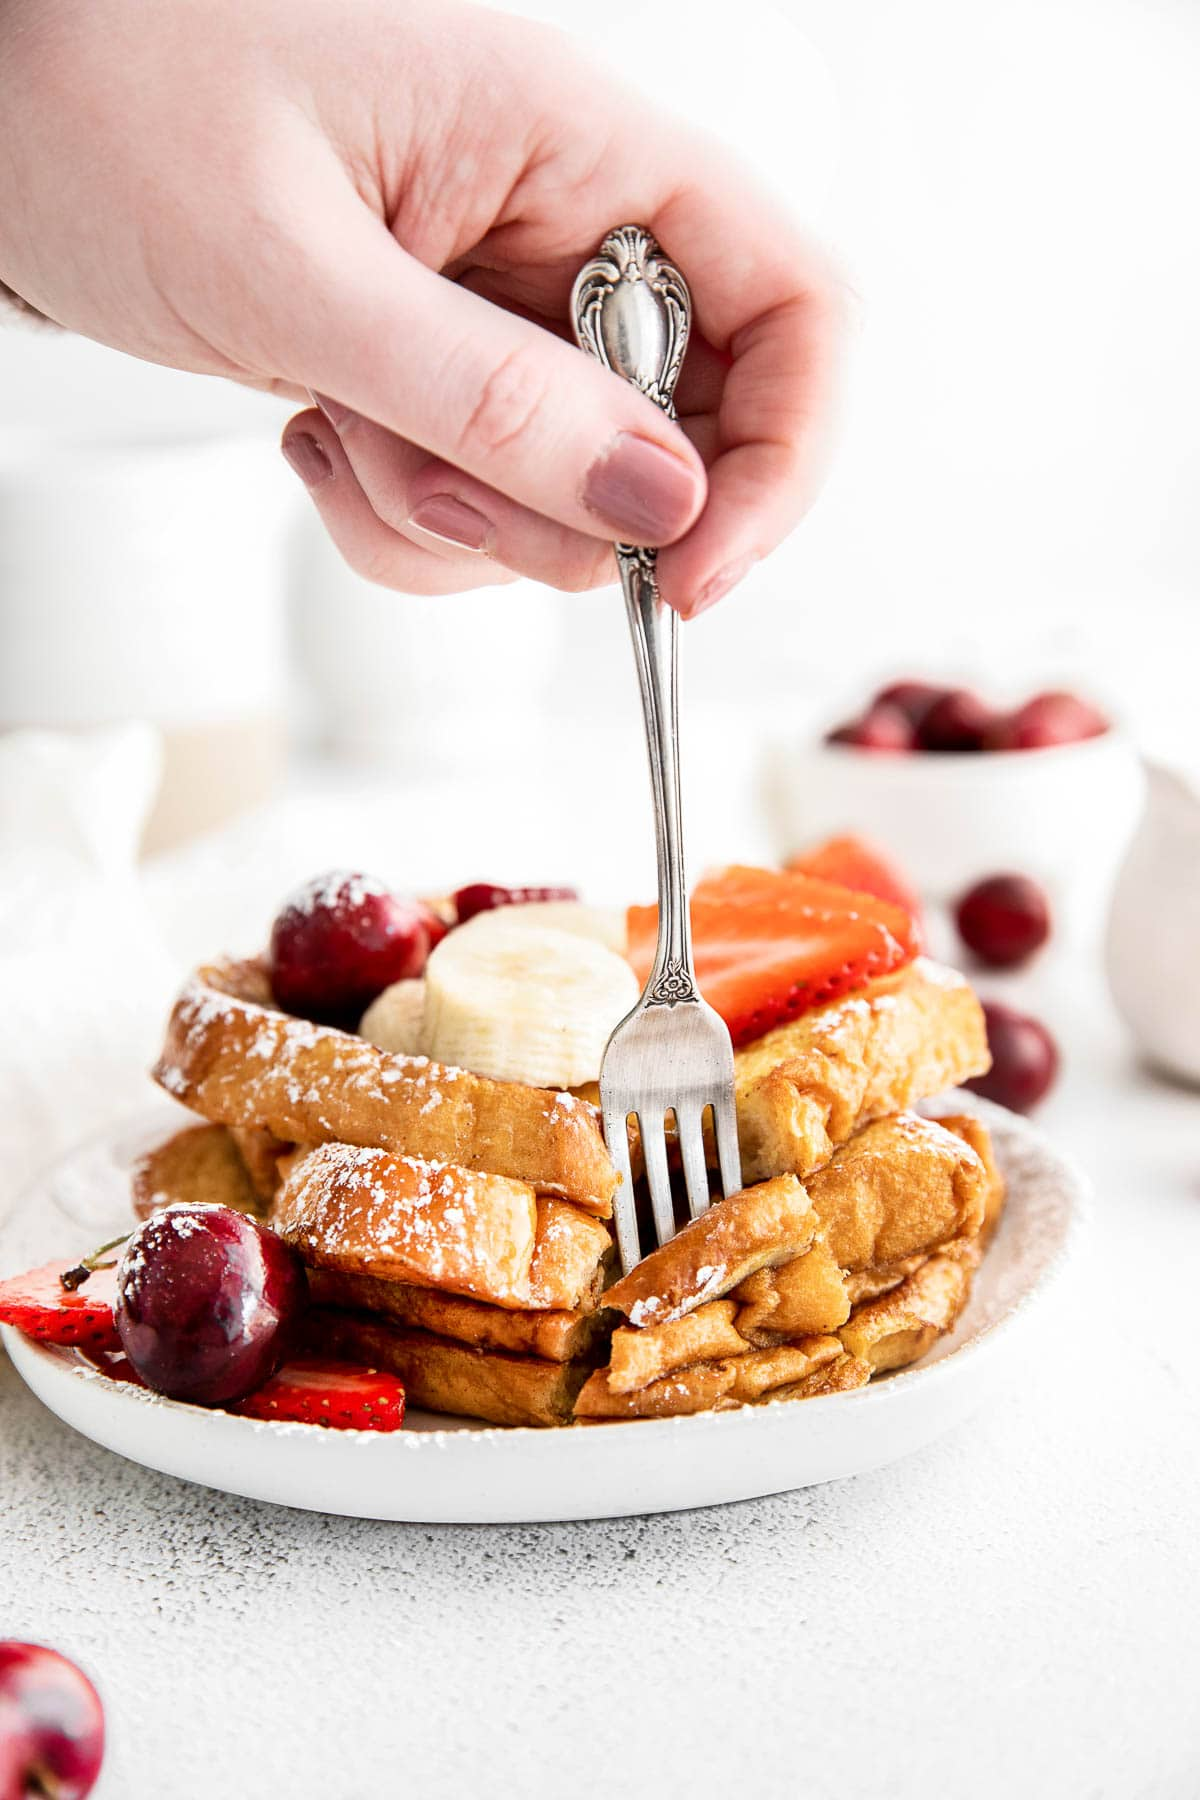 a stack of brioche french toast topped with sliced bananas, cherries and strawberries on a white plate with a fork